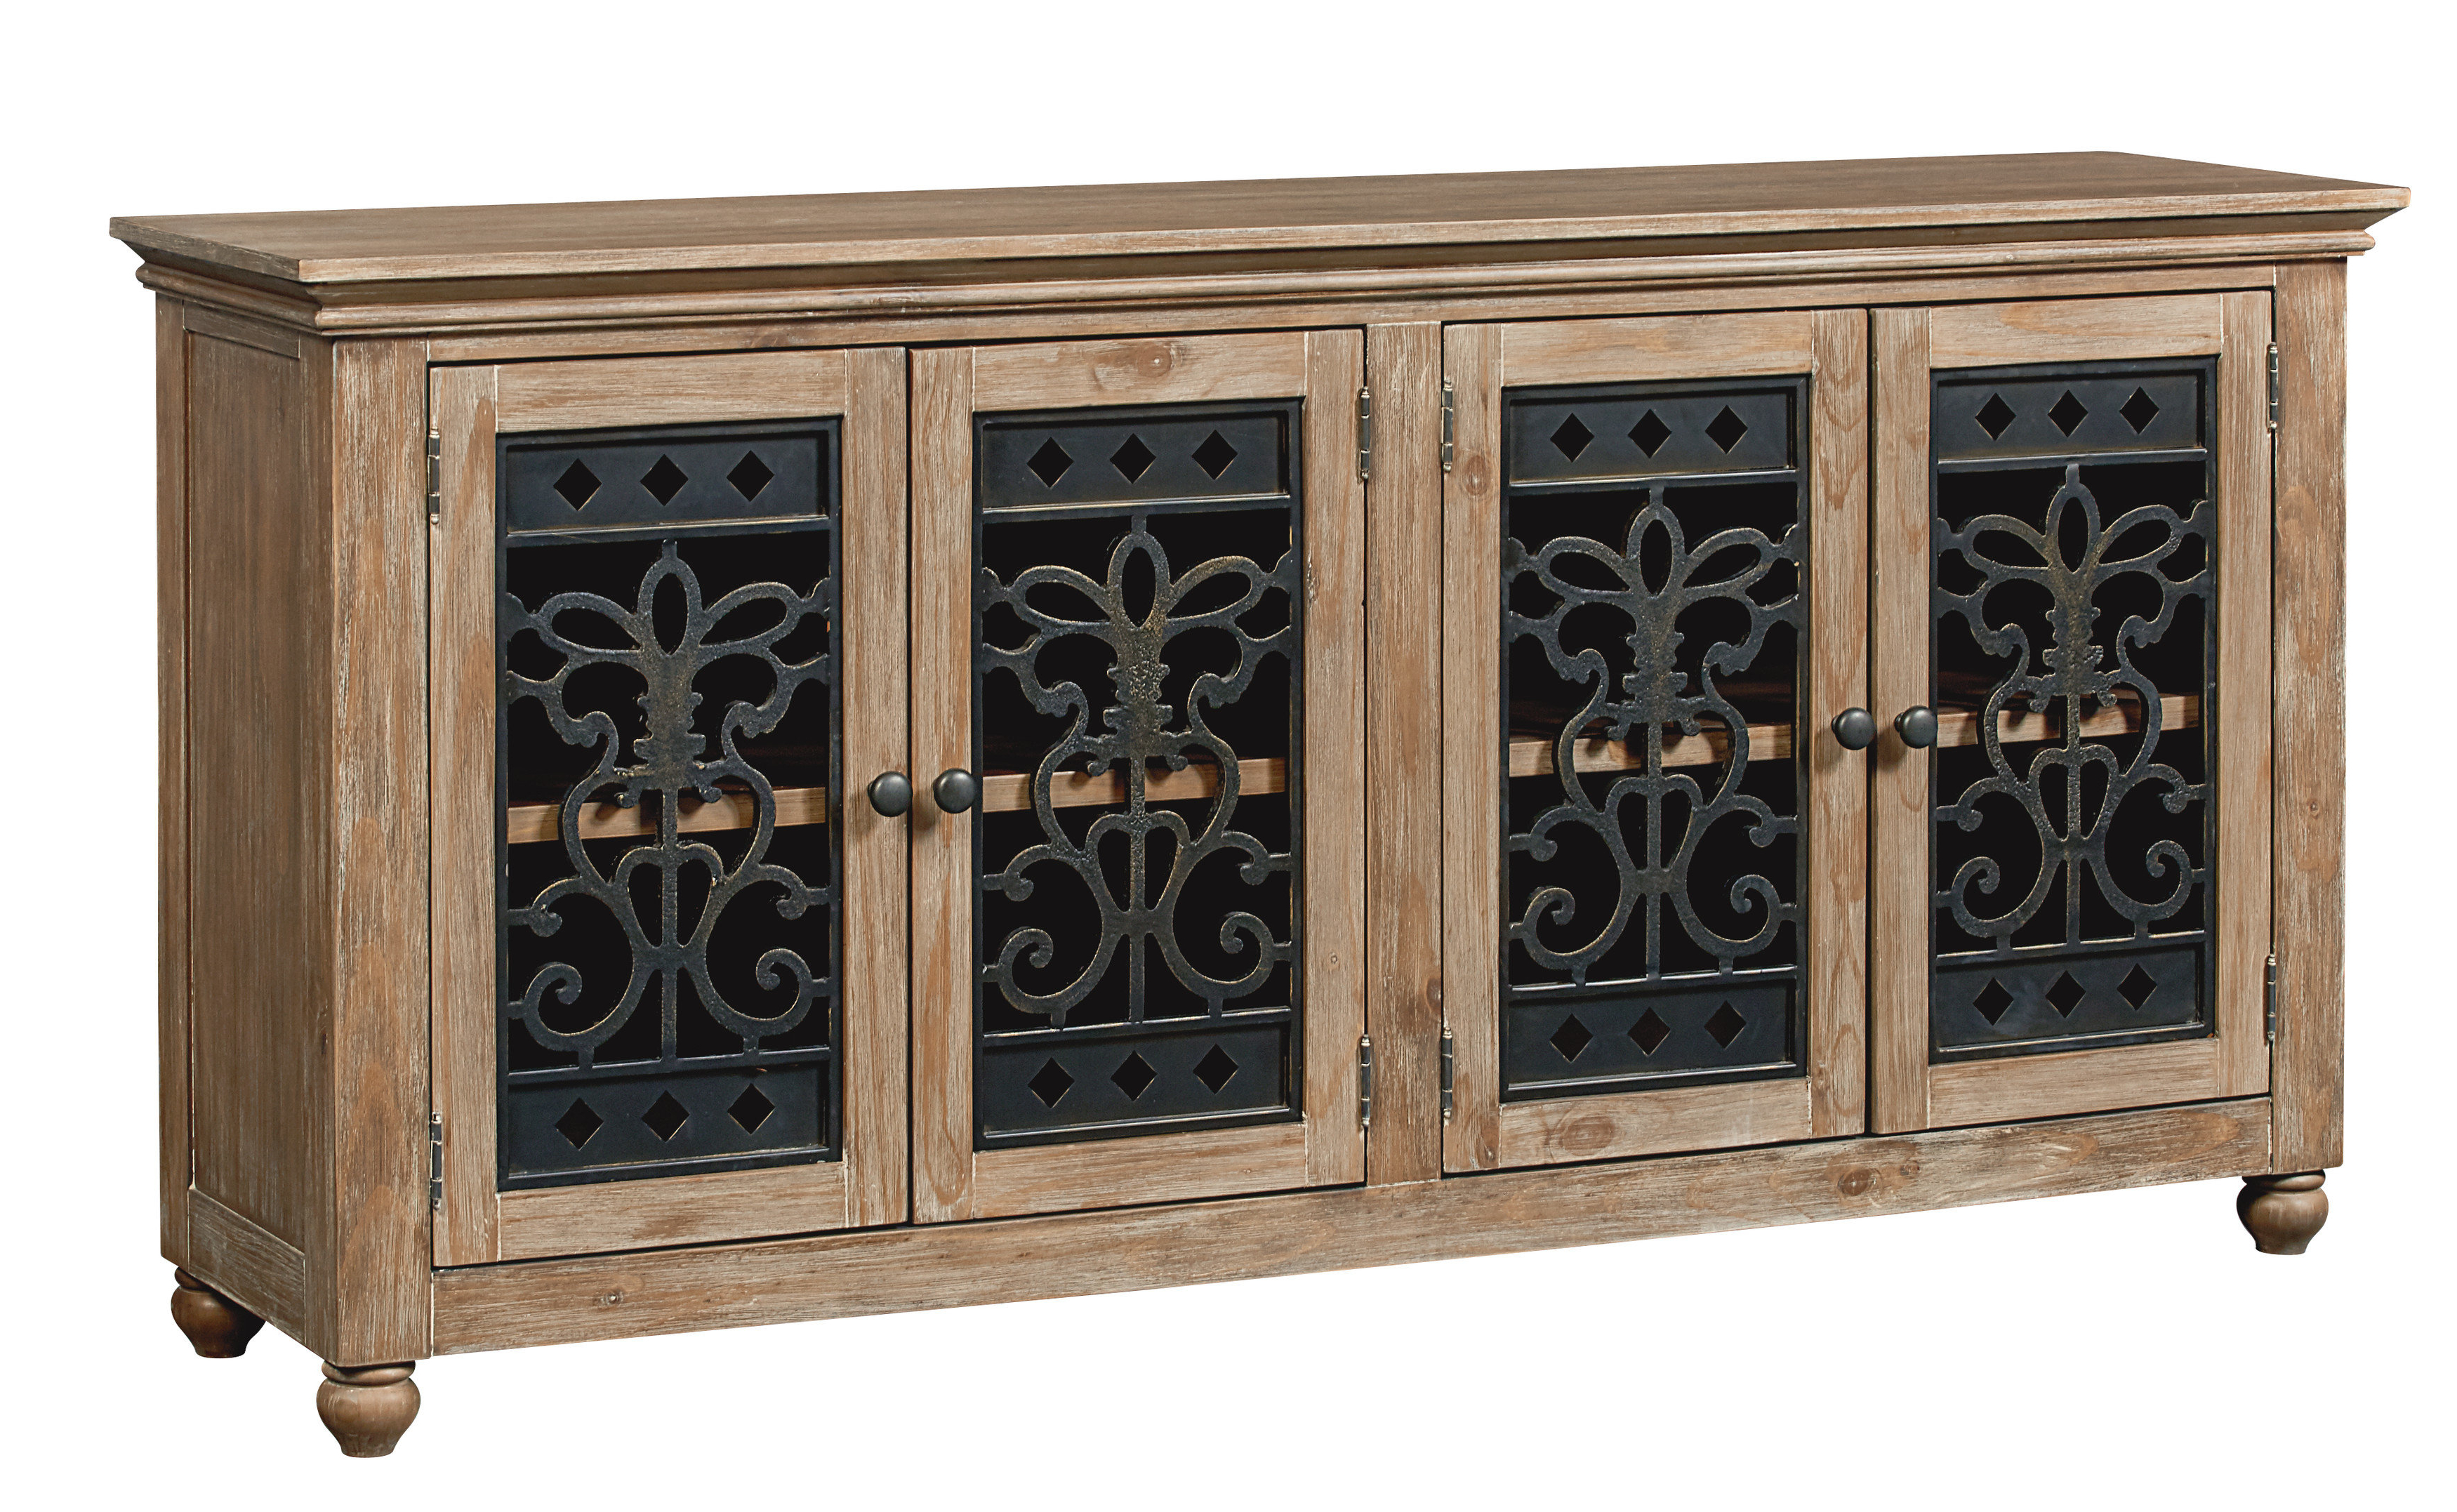 Basco Buffet Table With Regard To Mauldin 3 Door Sideboards (View 7 of 20)